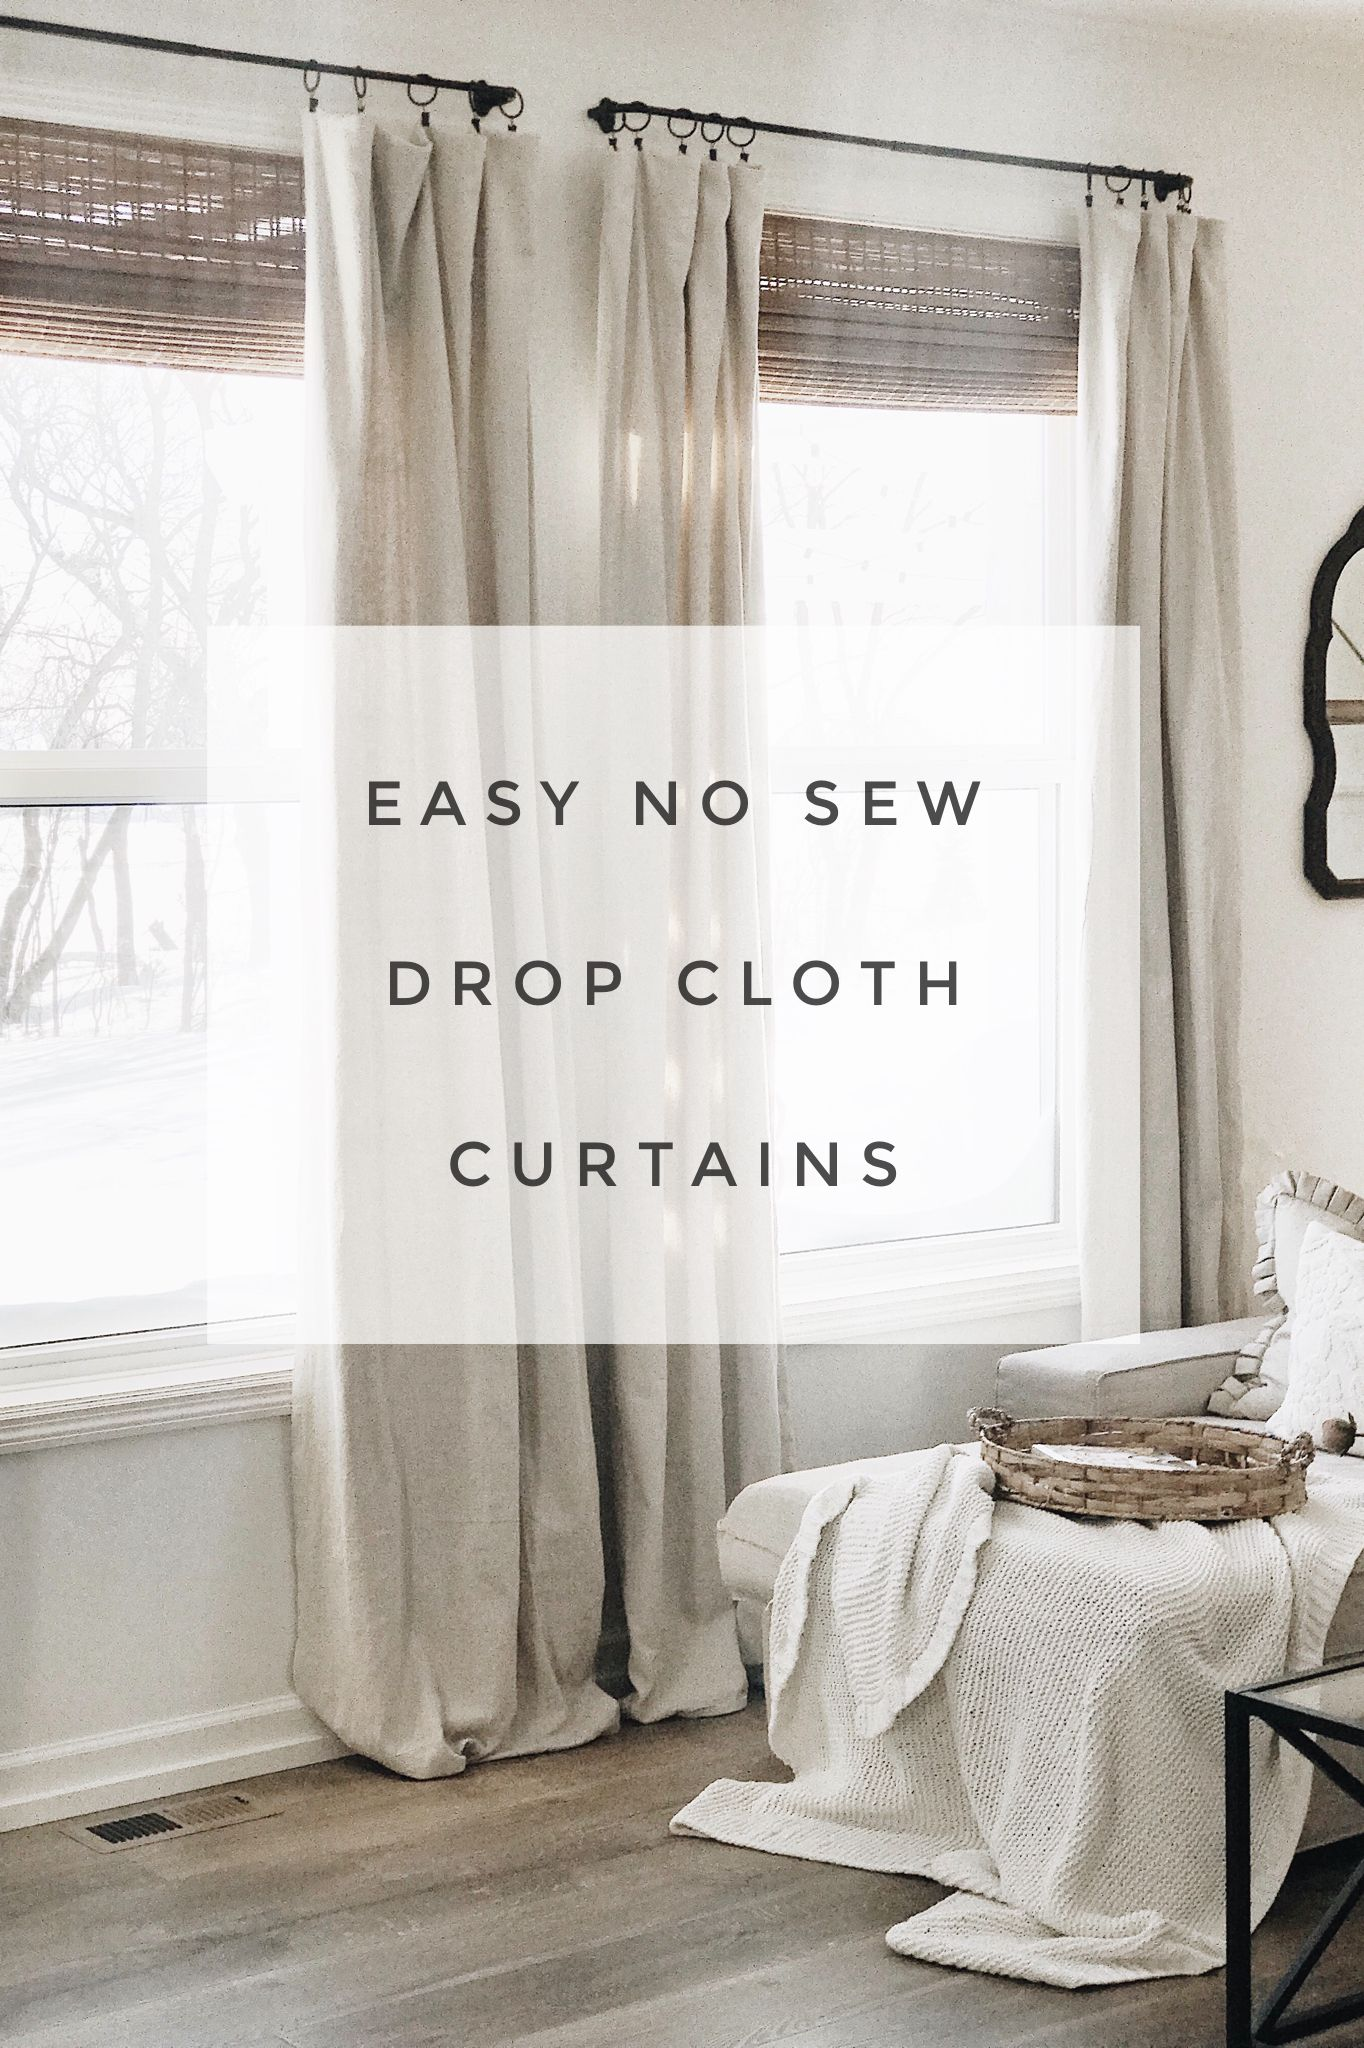 easy no sew drop cloth curtains Modern Farmhouse style diy drop cloth curtains